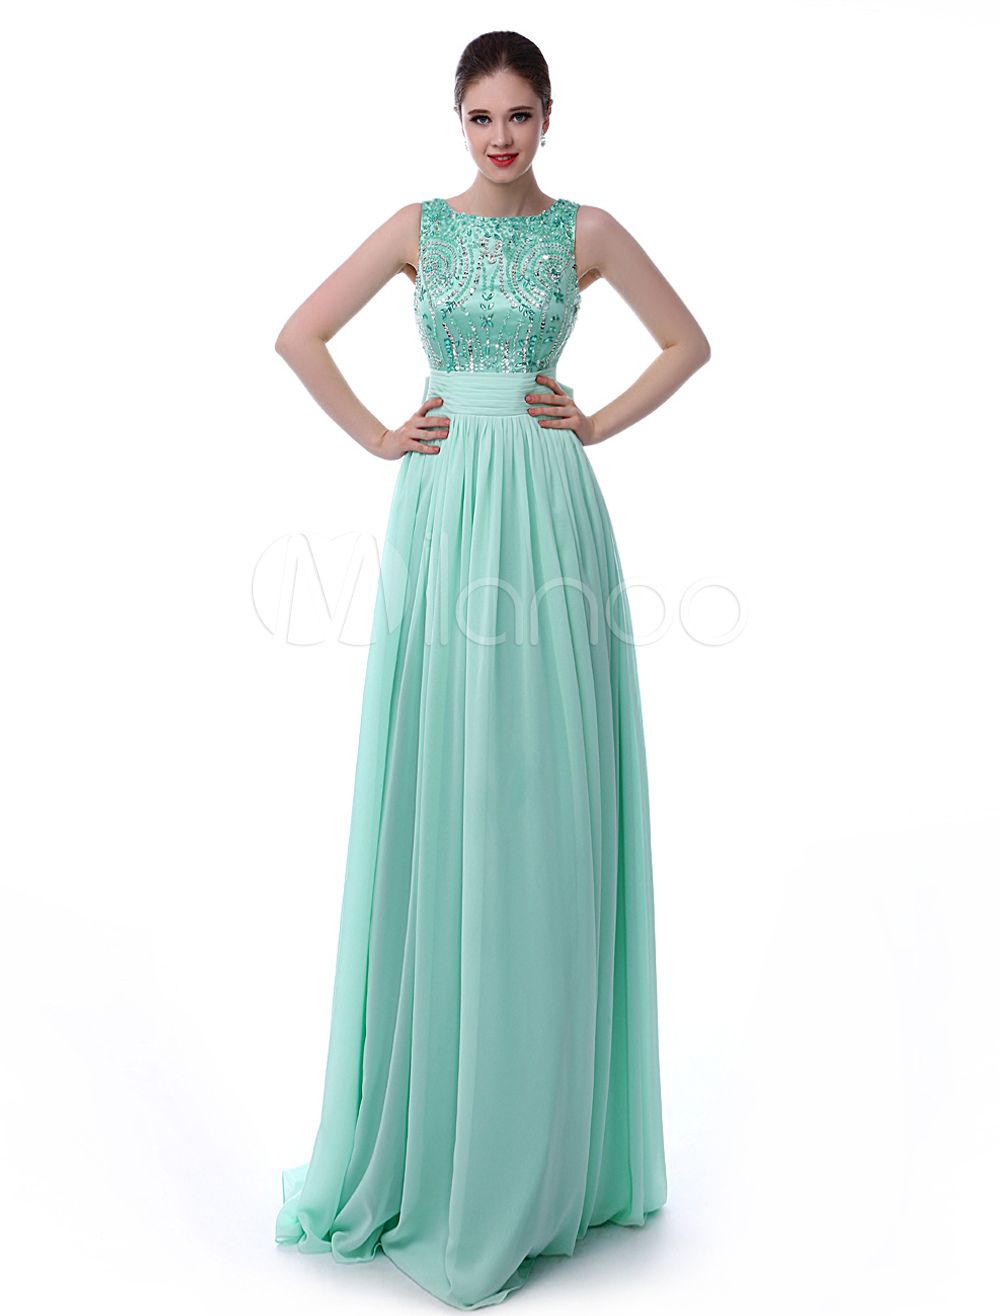 e81b8854b3c3 Mint Green Prom Dress V-Back Rhinestone Bow Sash Sequins Chiffon ...